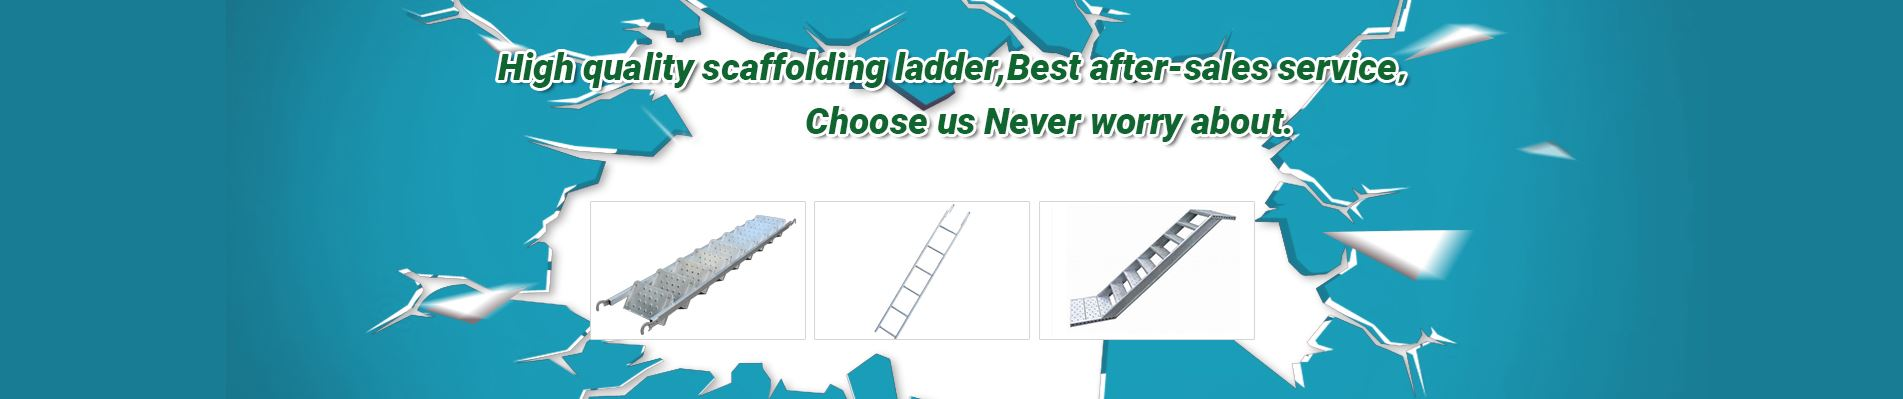 scaffolding-ladder